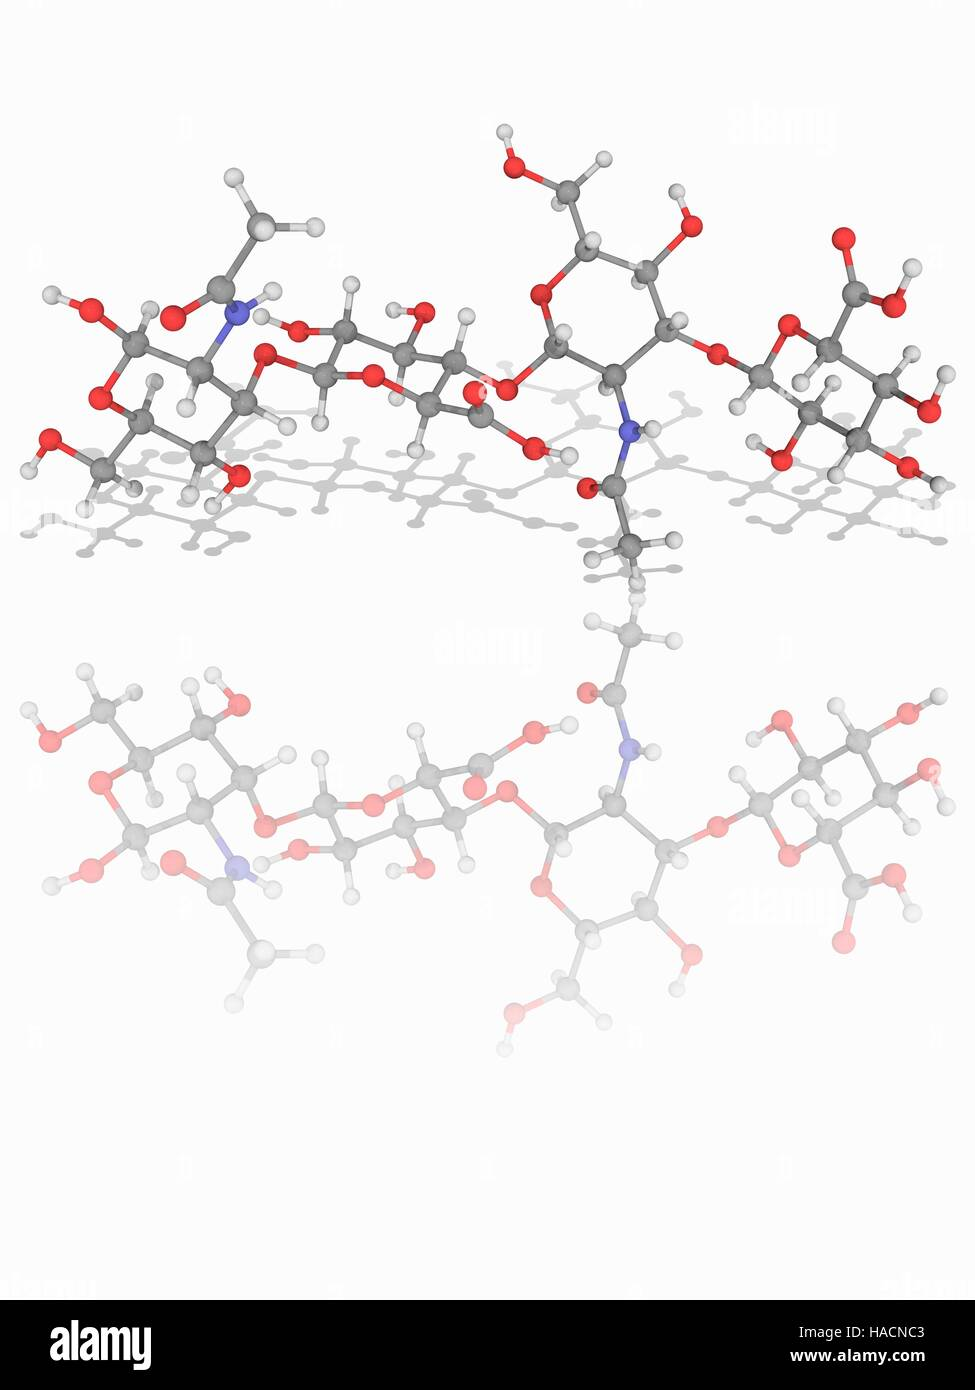 Hyaluronic acid. Molecular model of two units of the glycosaminoglycan polymer hyaluronic acid (C14.H21.N.O11), - Stock Image